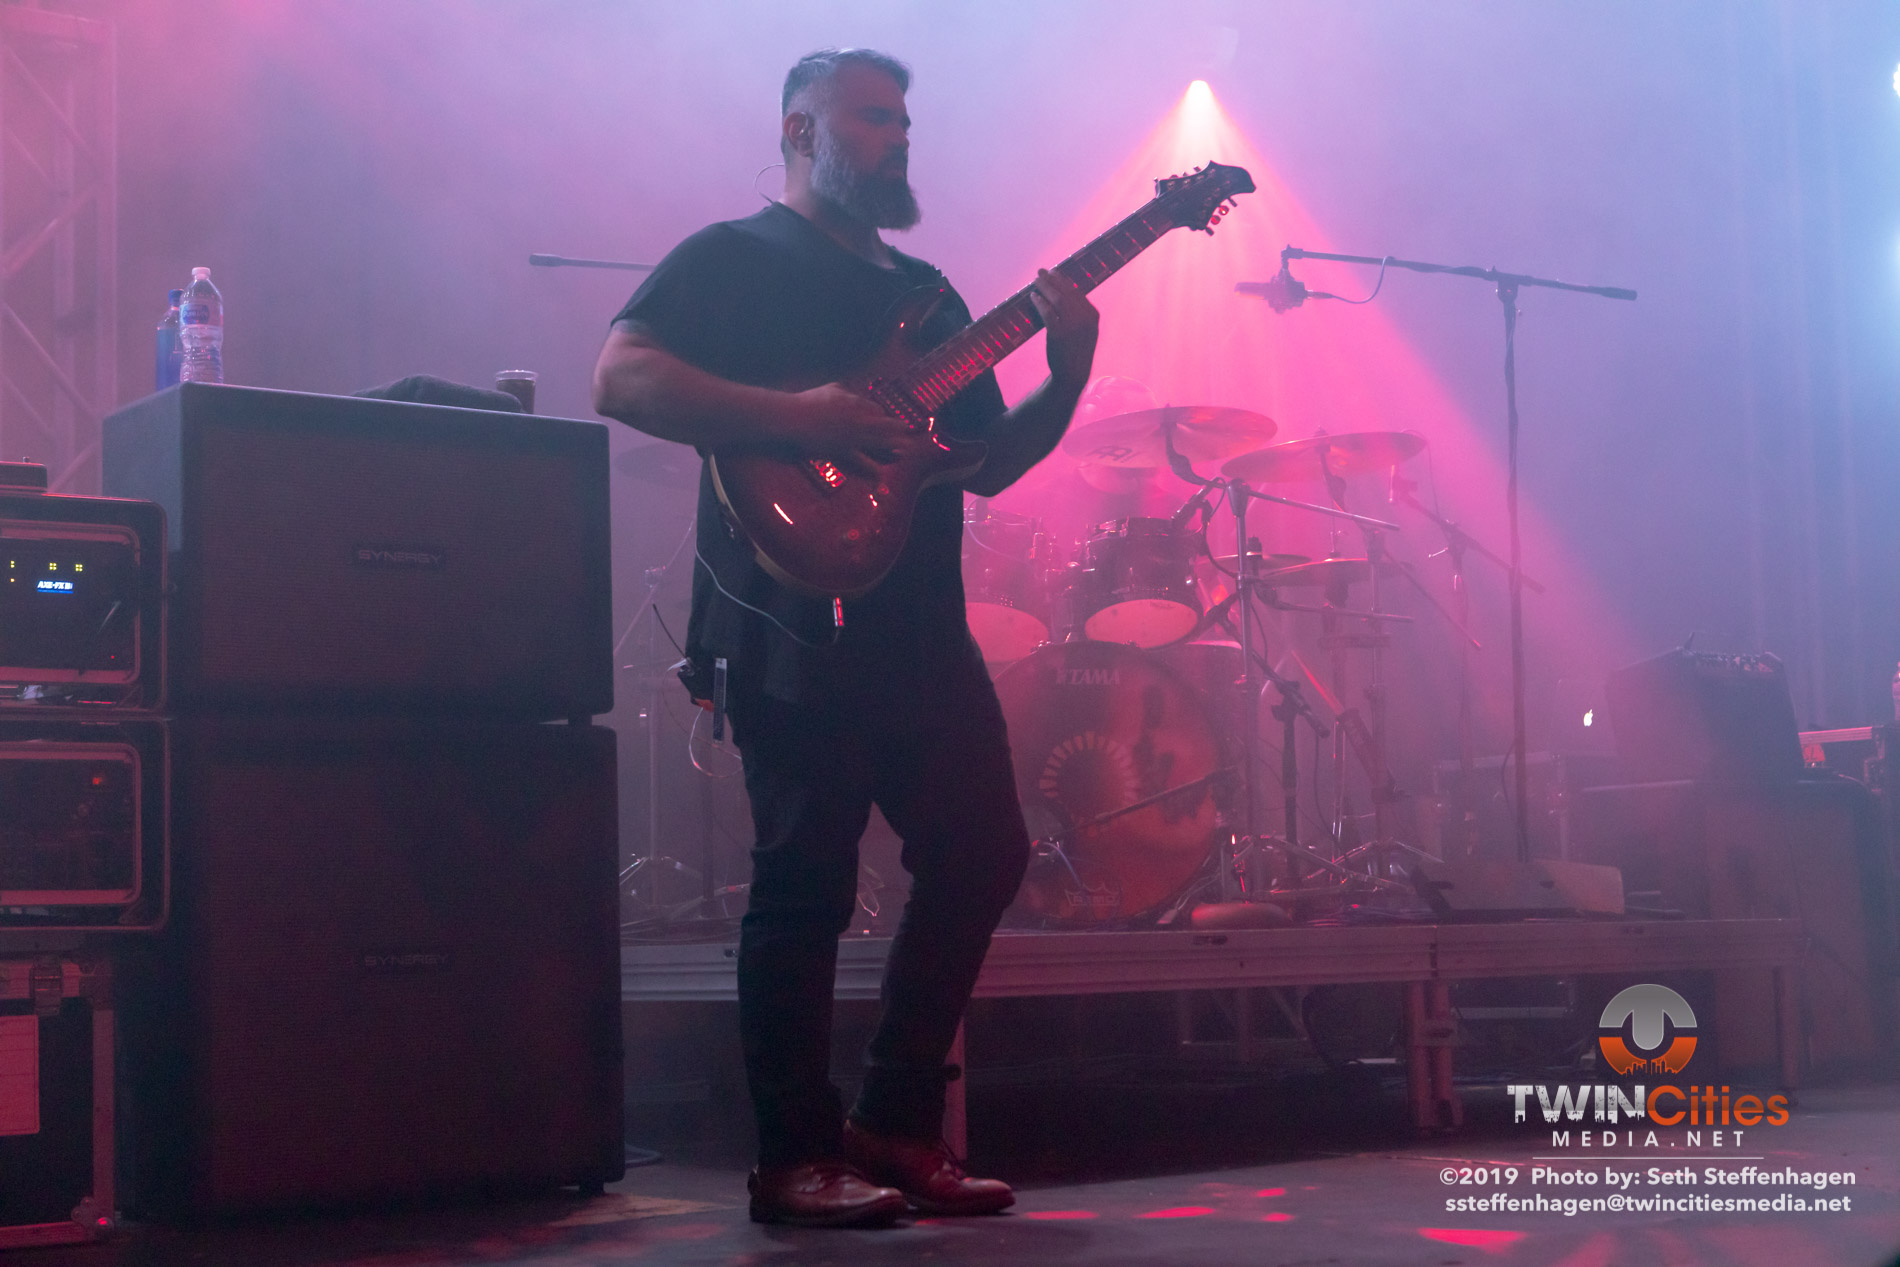 May 15, 2019 - Minneapolis, Minnesota, United States - Animals As Leaders live in concert at the Skyway Theatre along with The Contortionist and Buke And Gase as the openers.(Photo by Seth Steffenhagen/Steffenhagen Photography)